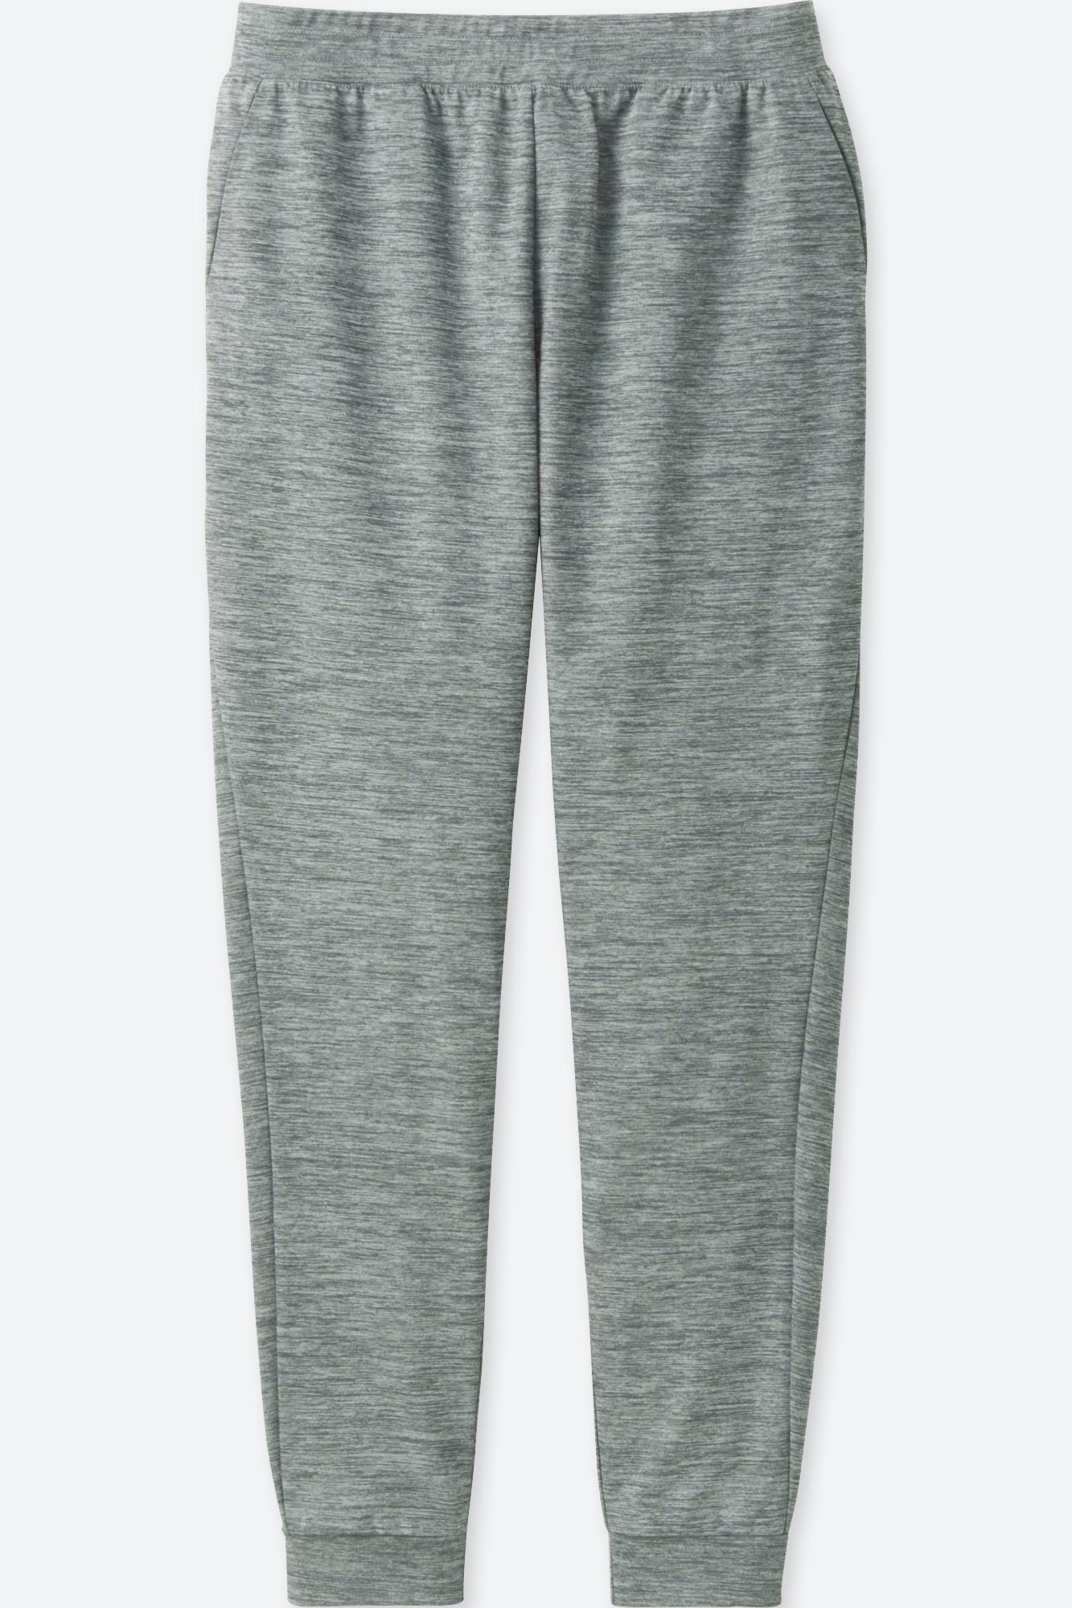 Uniqlo Women's Dry Ex Ultra Stretch Ankle Length Pants